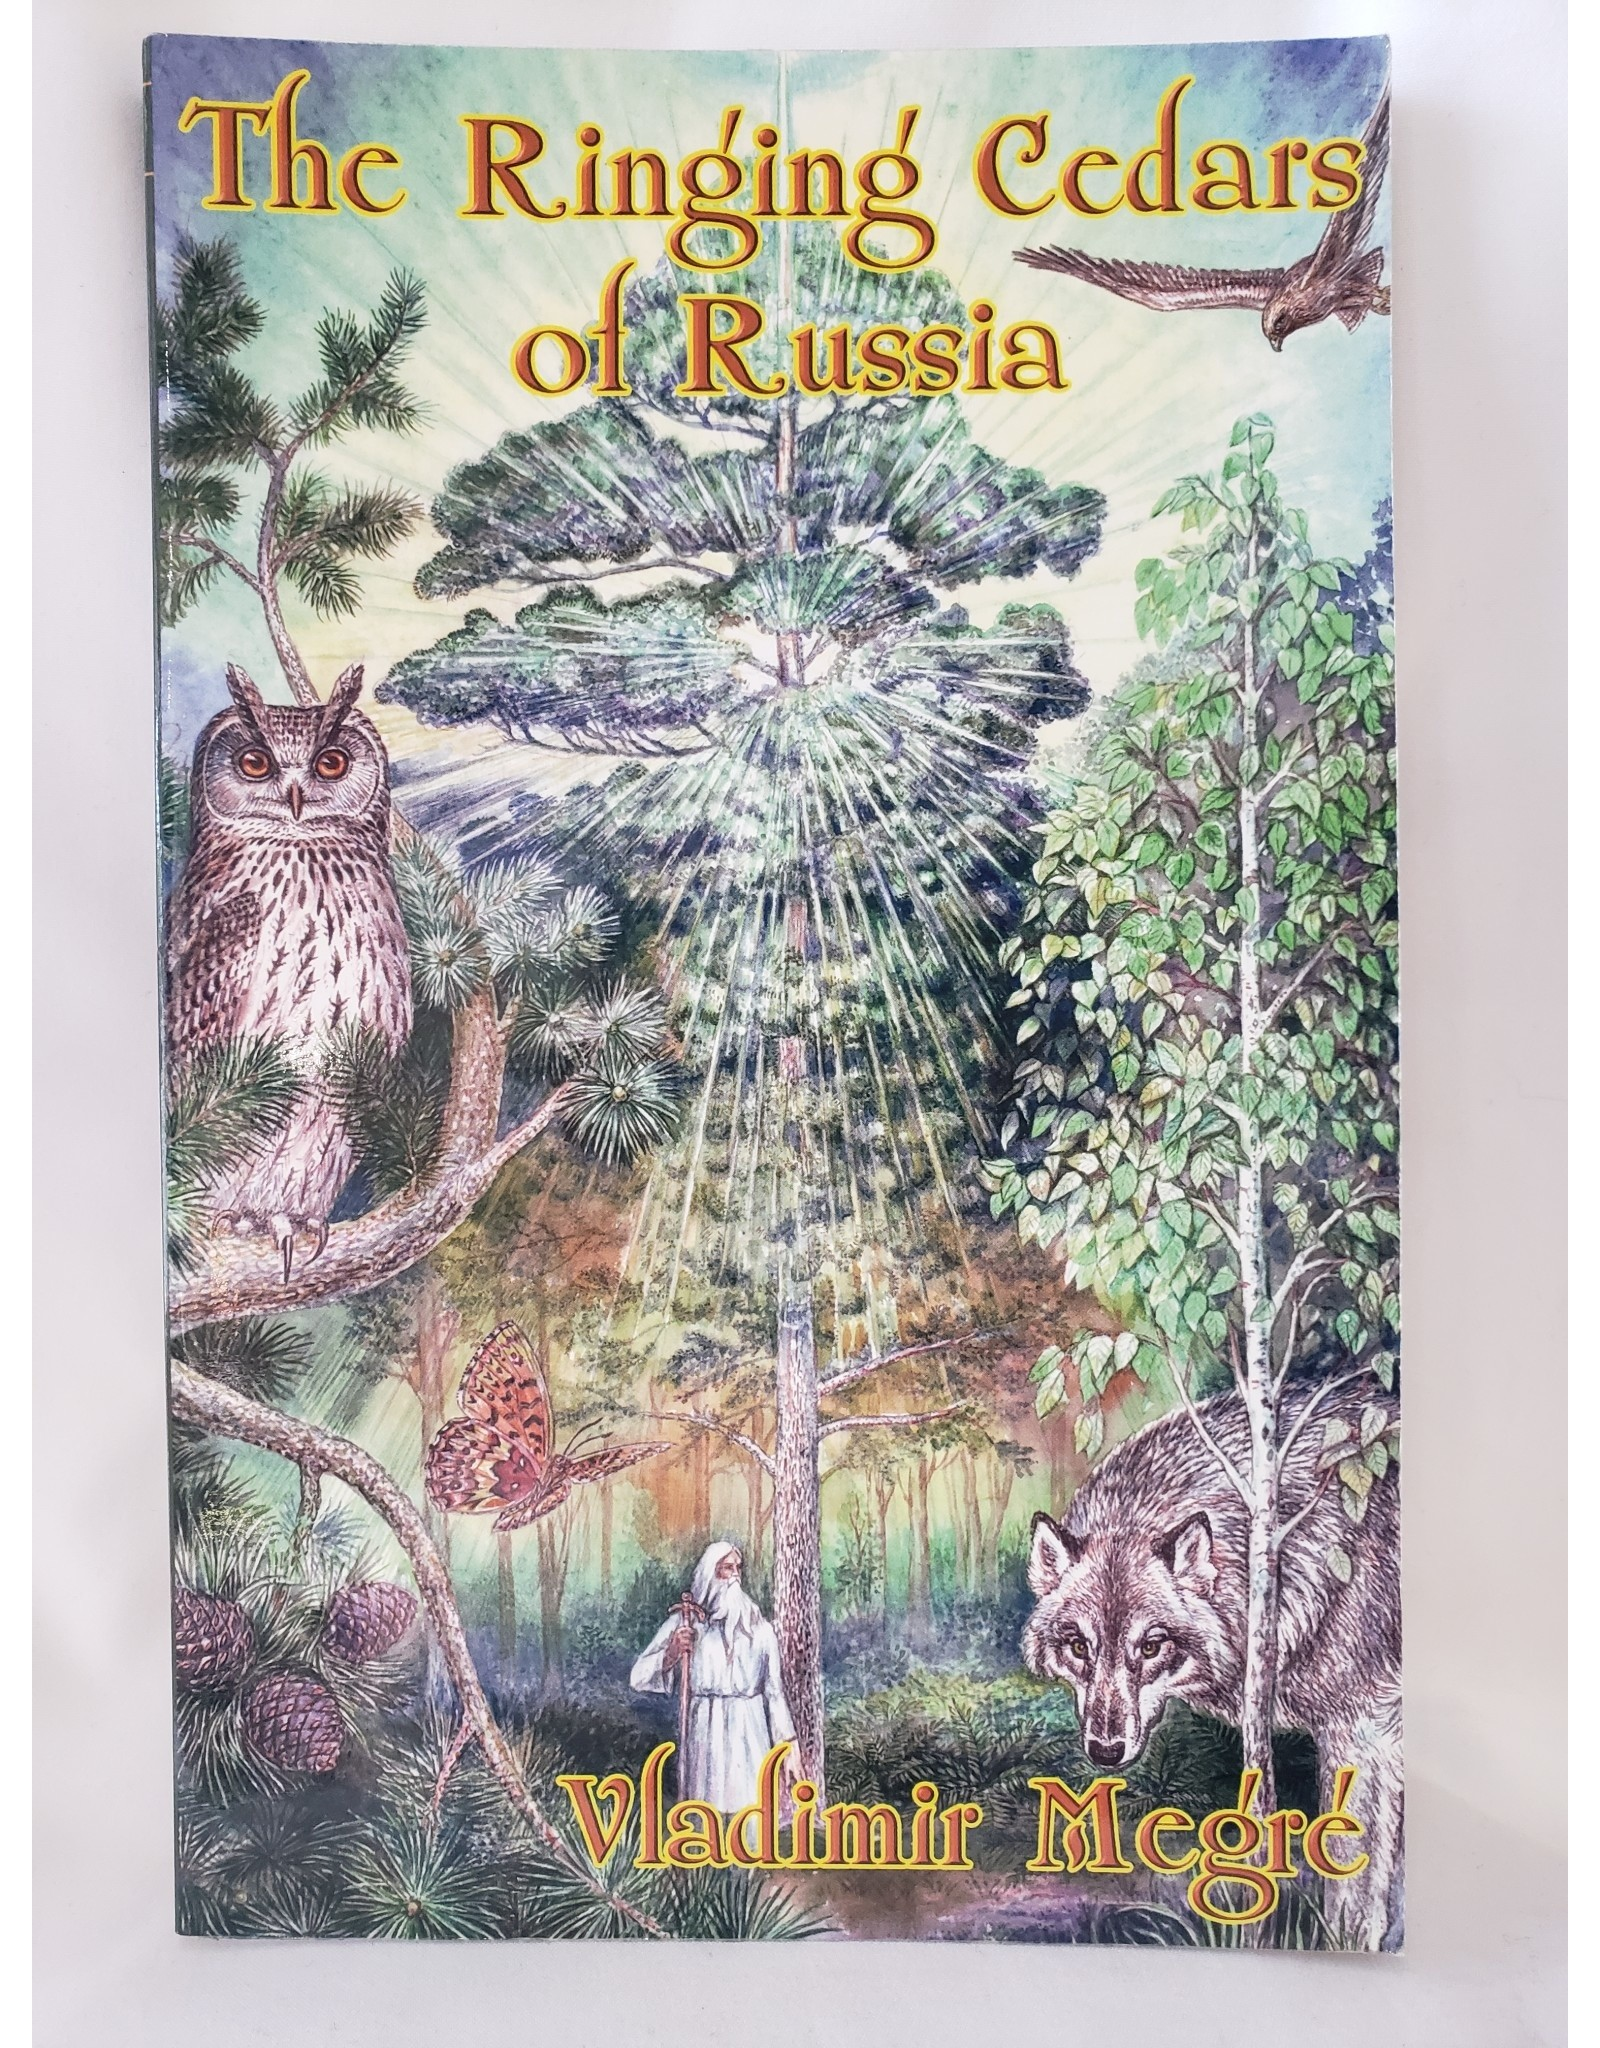 The Ringing Cedars Of Russia, Book 2